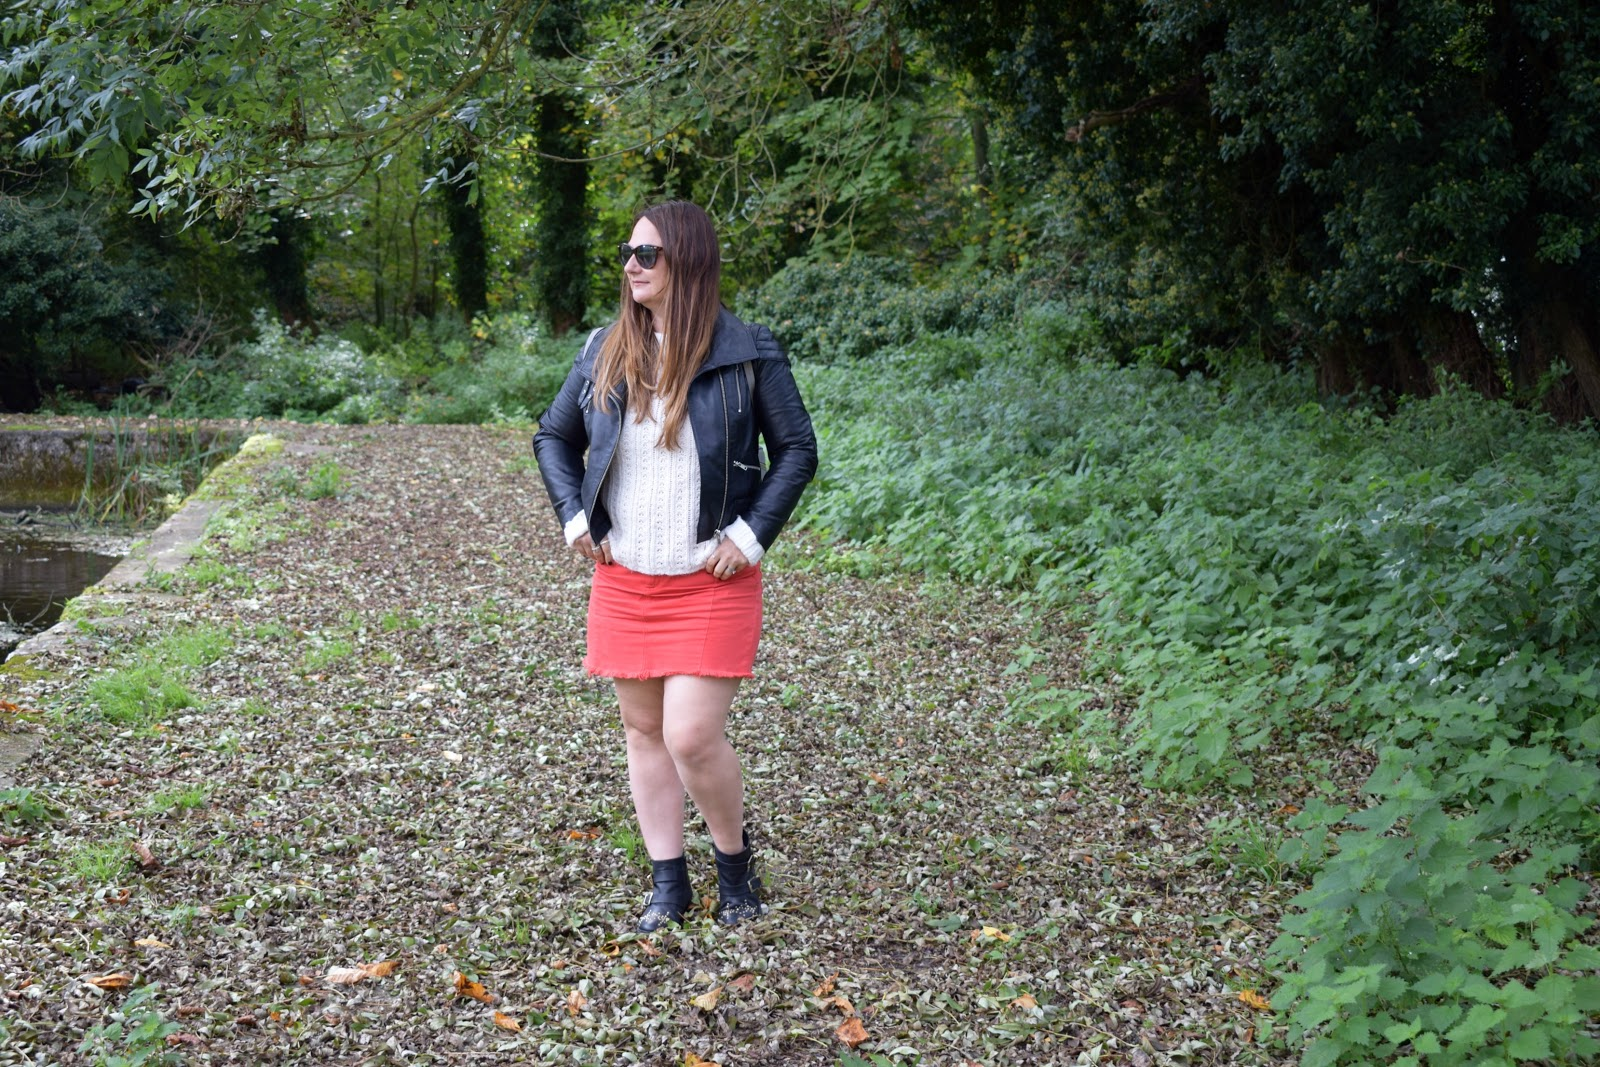 styling a denim skirt for autumn